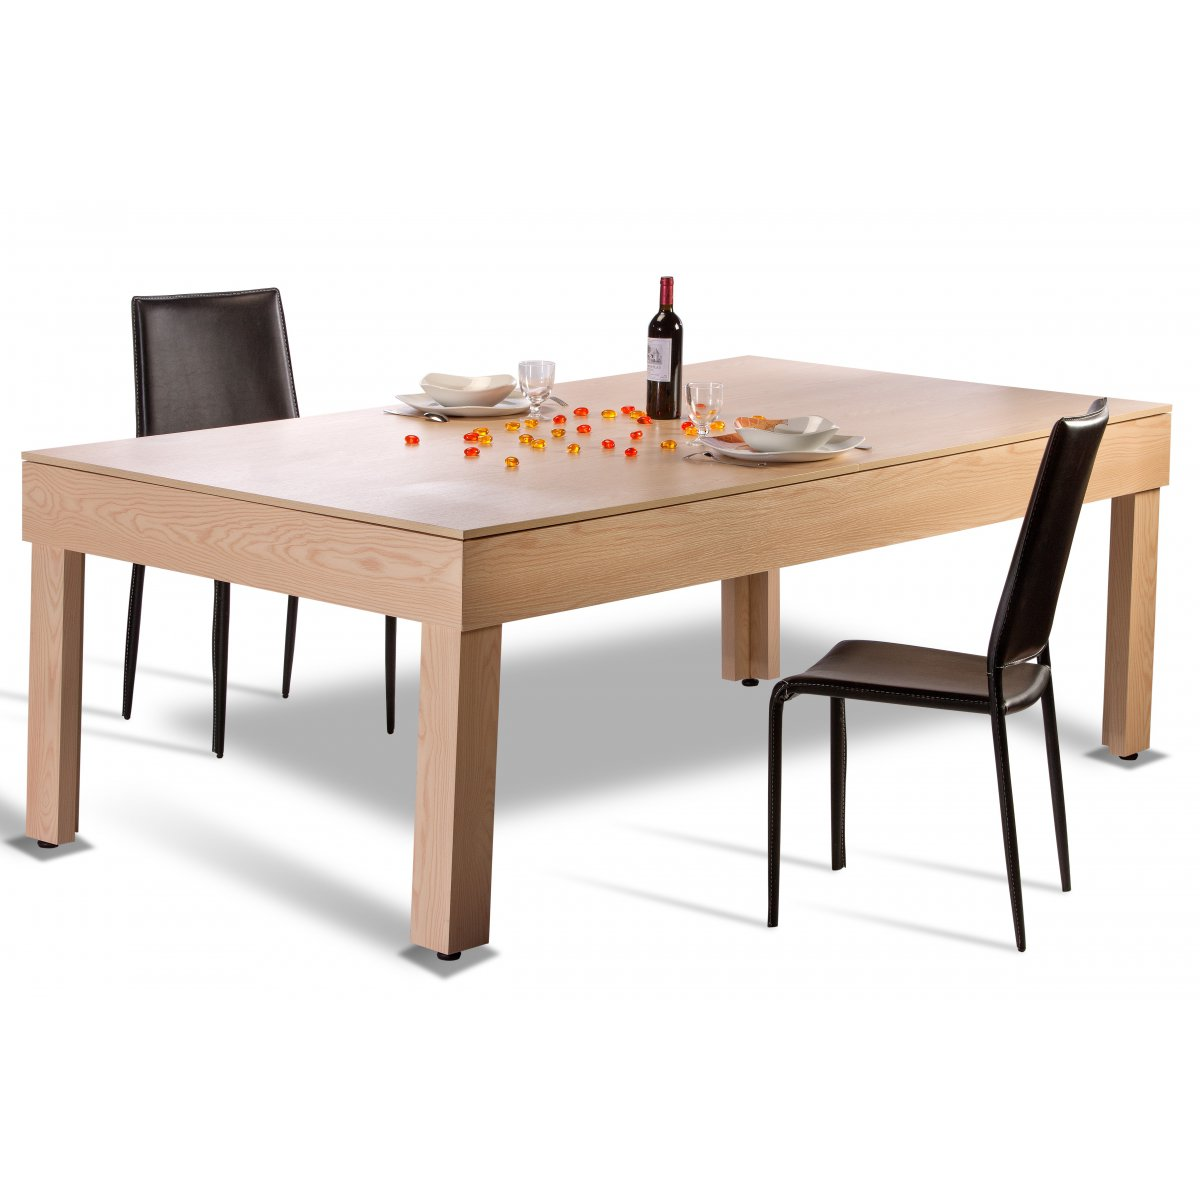 Billard am ricain avec plateau table et accessoires inclus - Table salon transformable ...